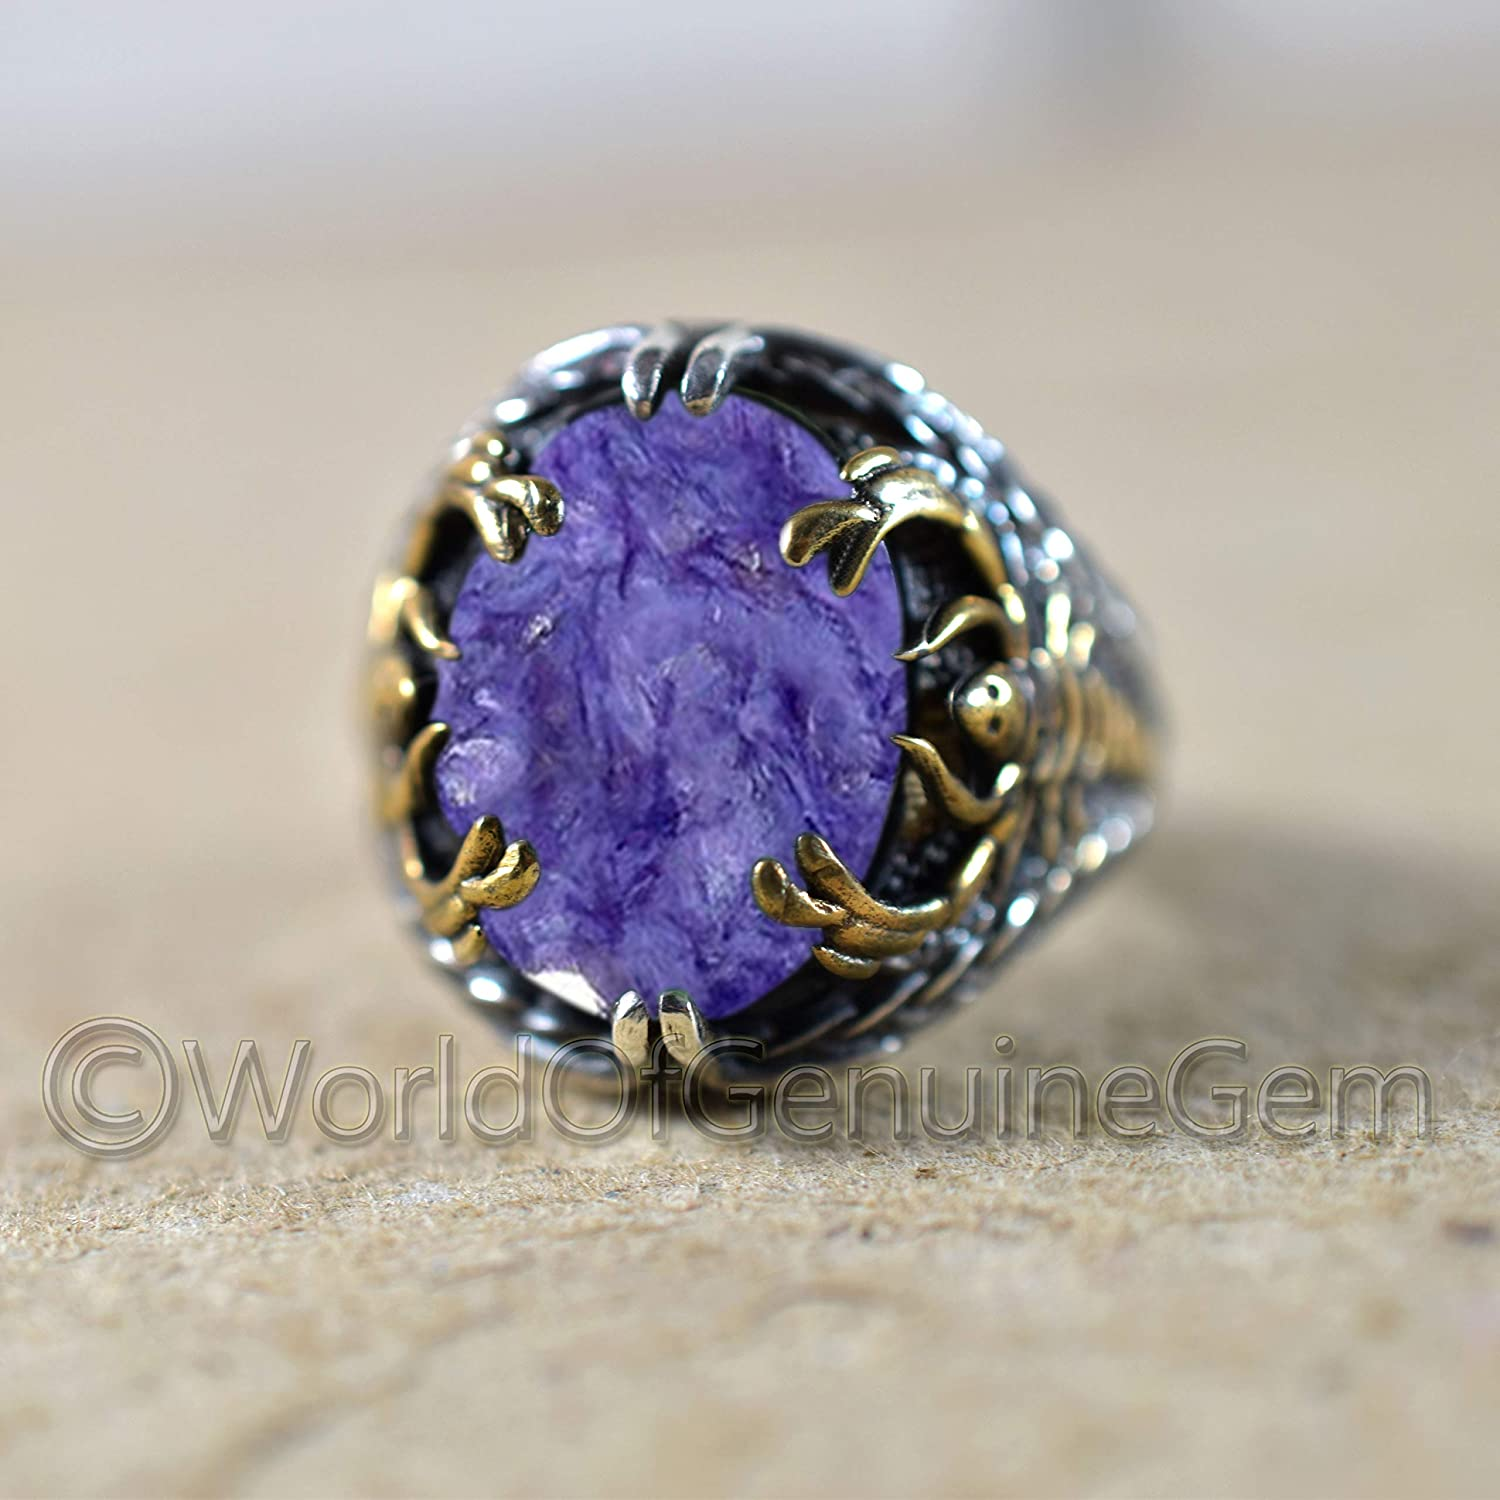 Scorpion Design Jewelry Statement Ring Oval Charoite Stone Ring Bachelor Party Jewelry Two Tone Mens Ring Solid 925 Sterling Silver Ring Natural Charoite Gemstone Jewelry Protection Ring